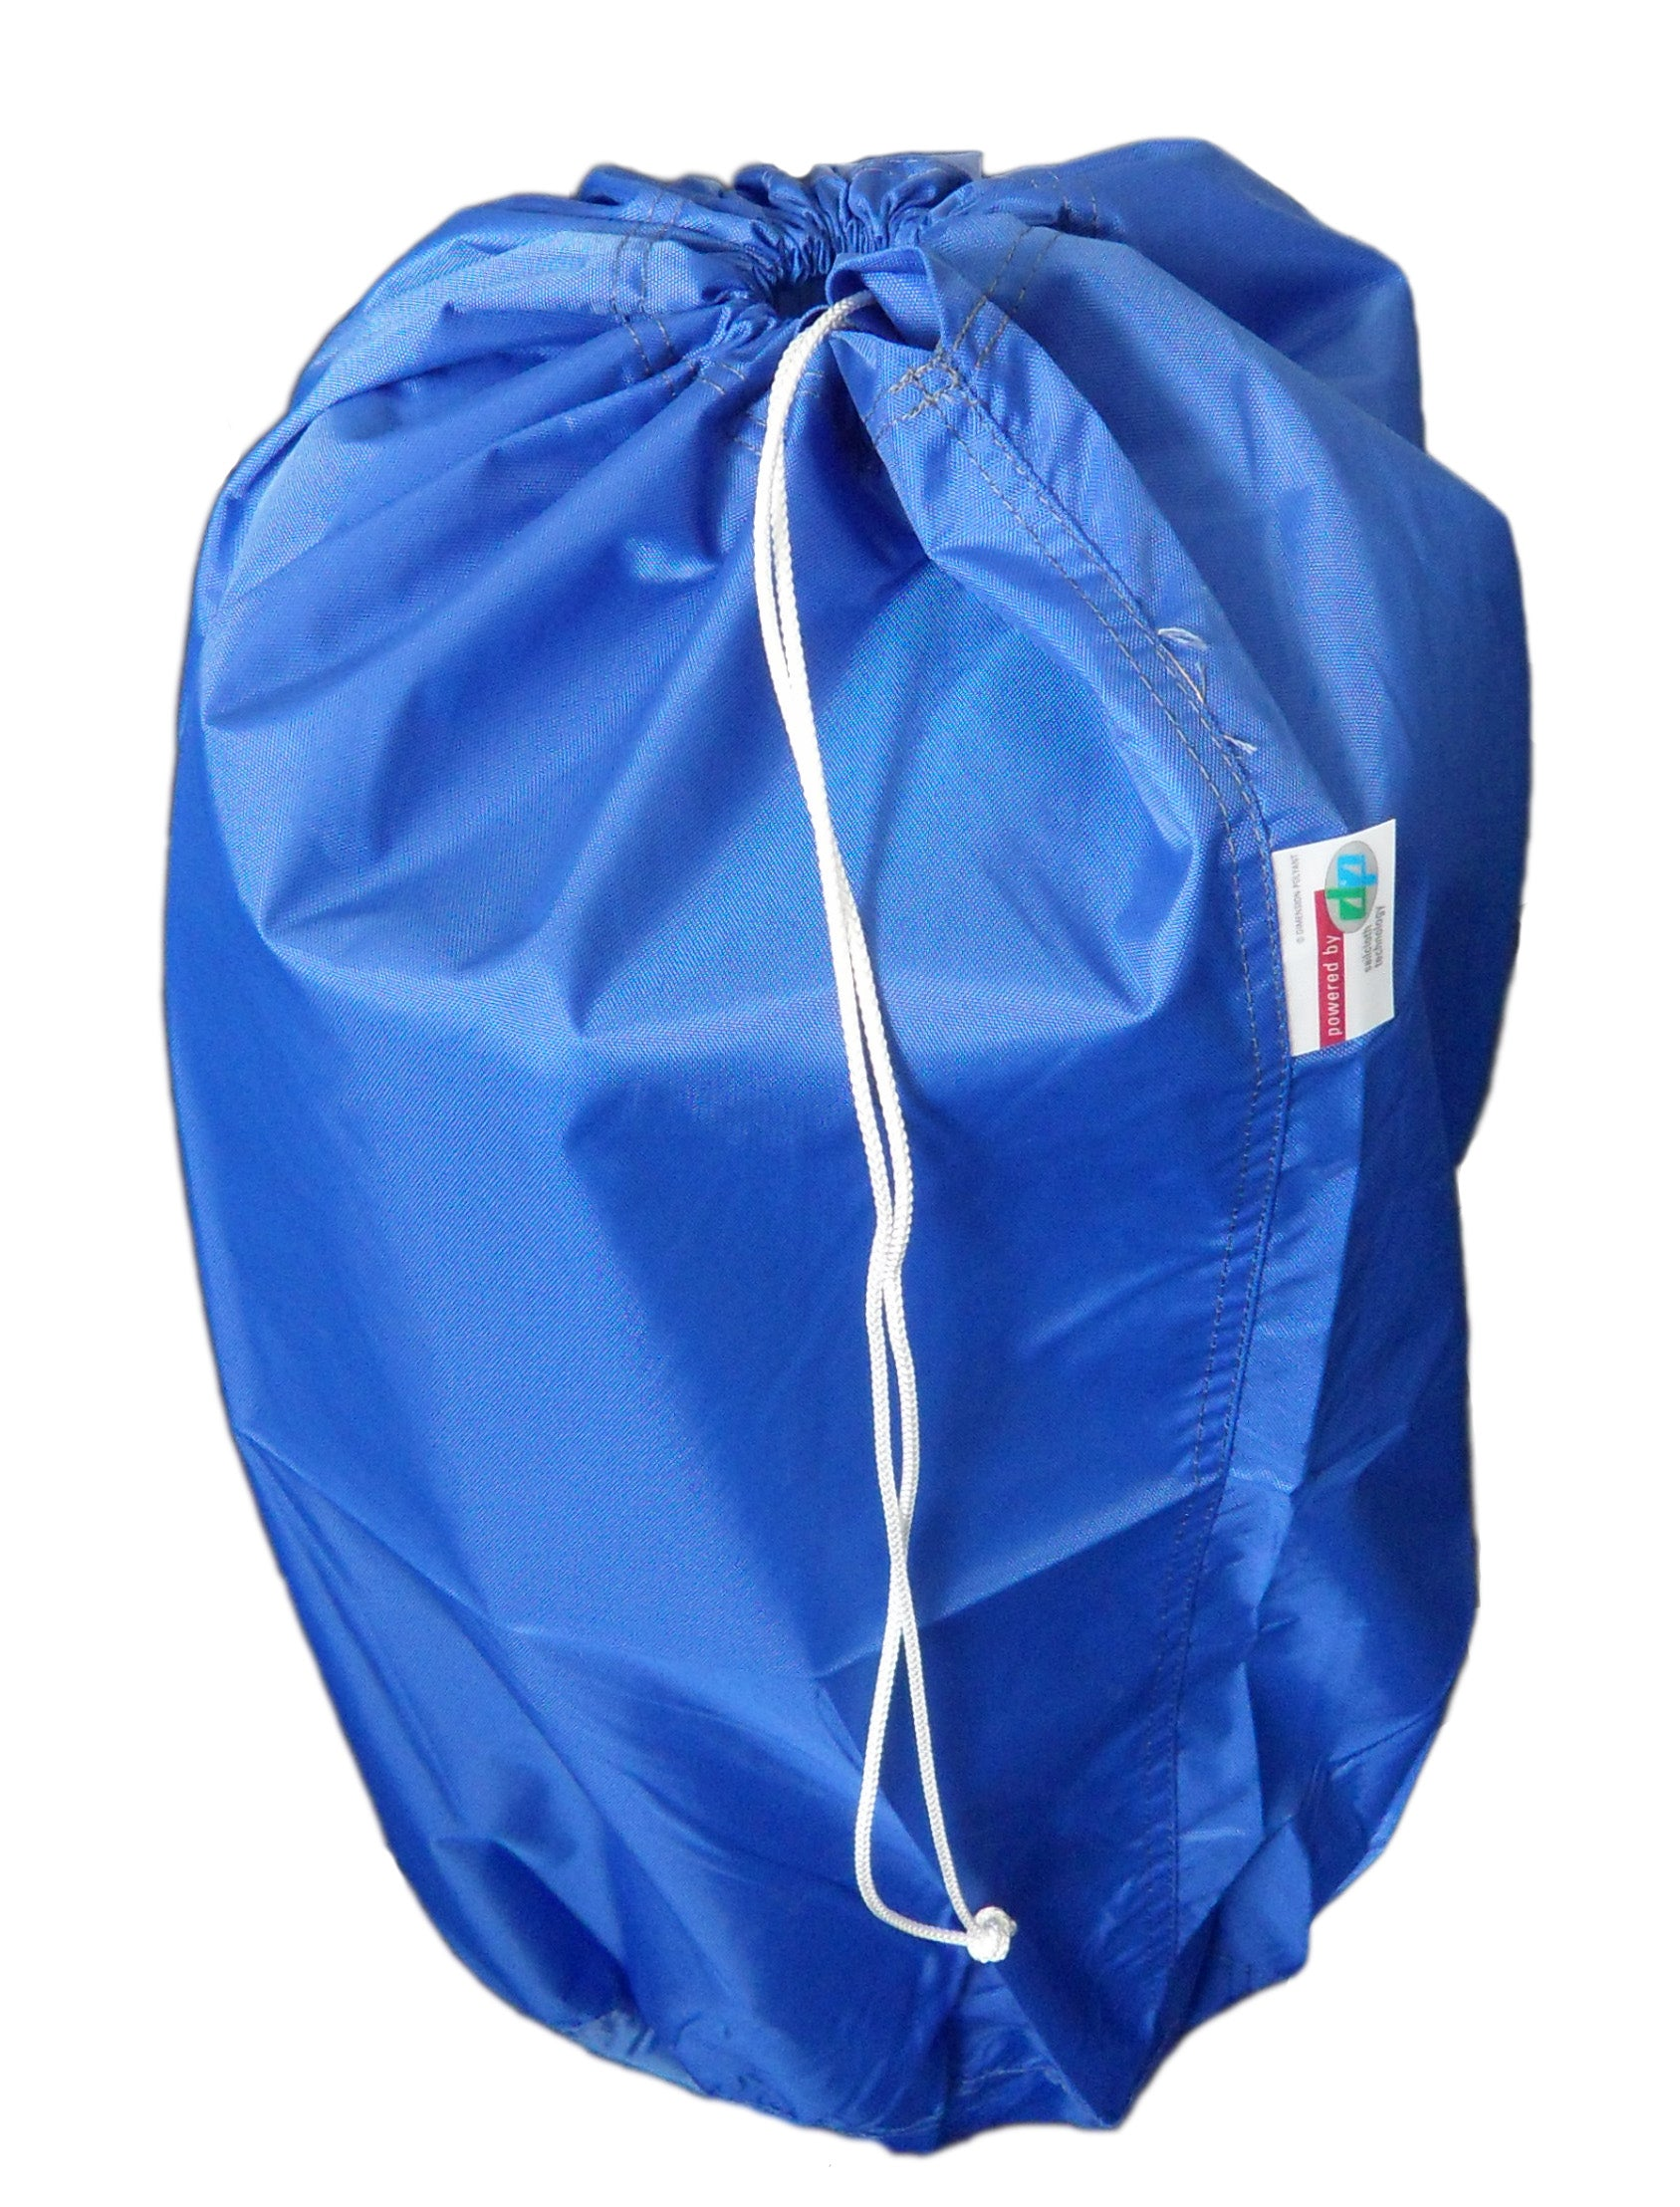 Round Sail Bag - Prices starting from: